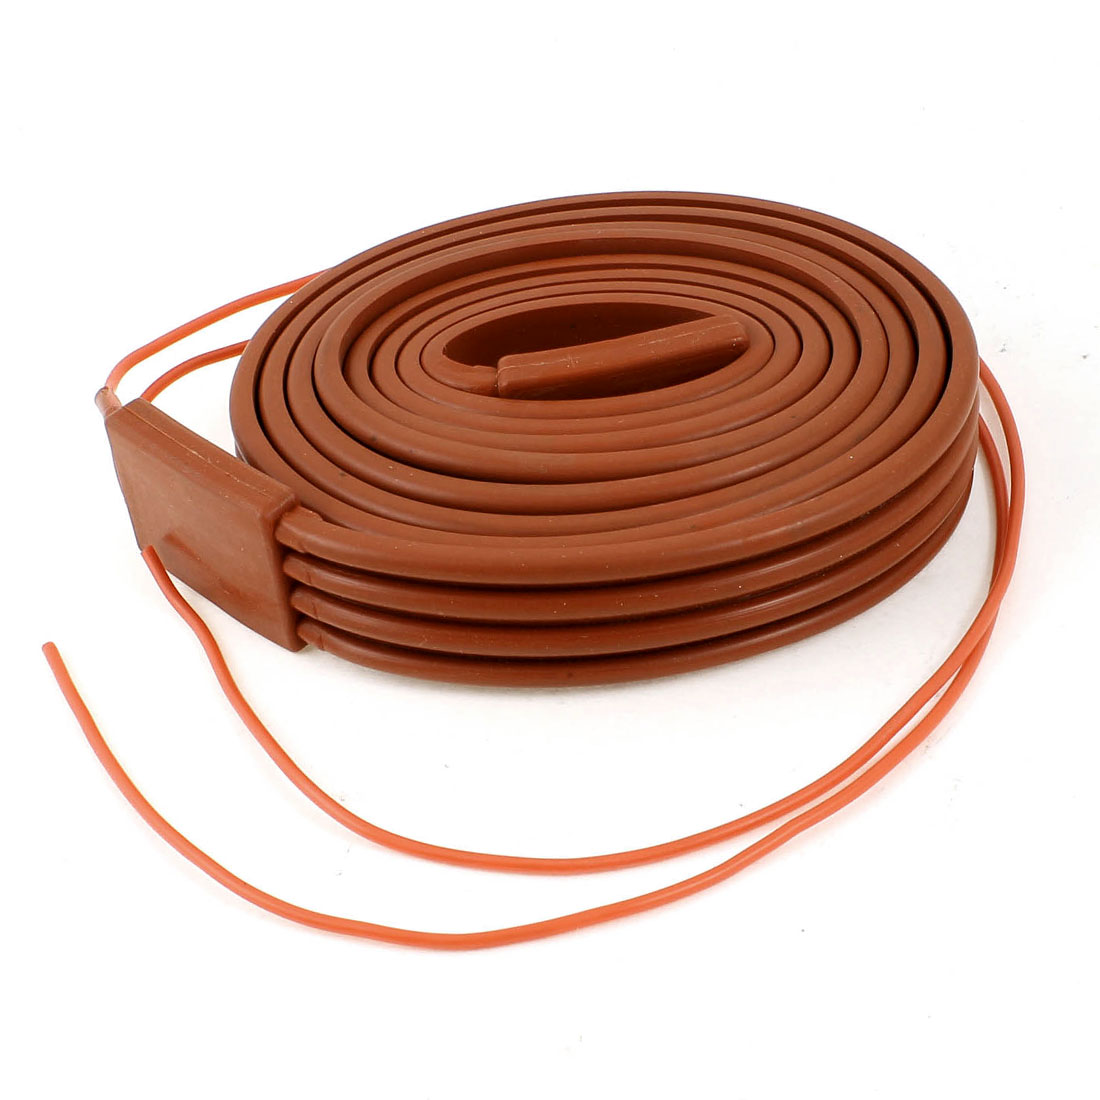 36V Freezing Protection Silicone Band Waterproof Heater Strip 2M x25mm